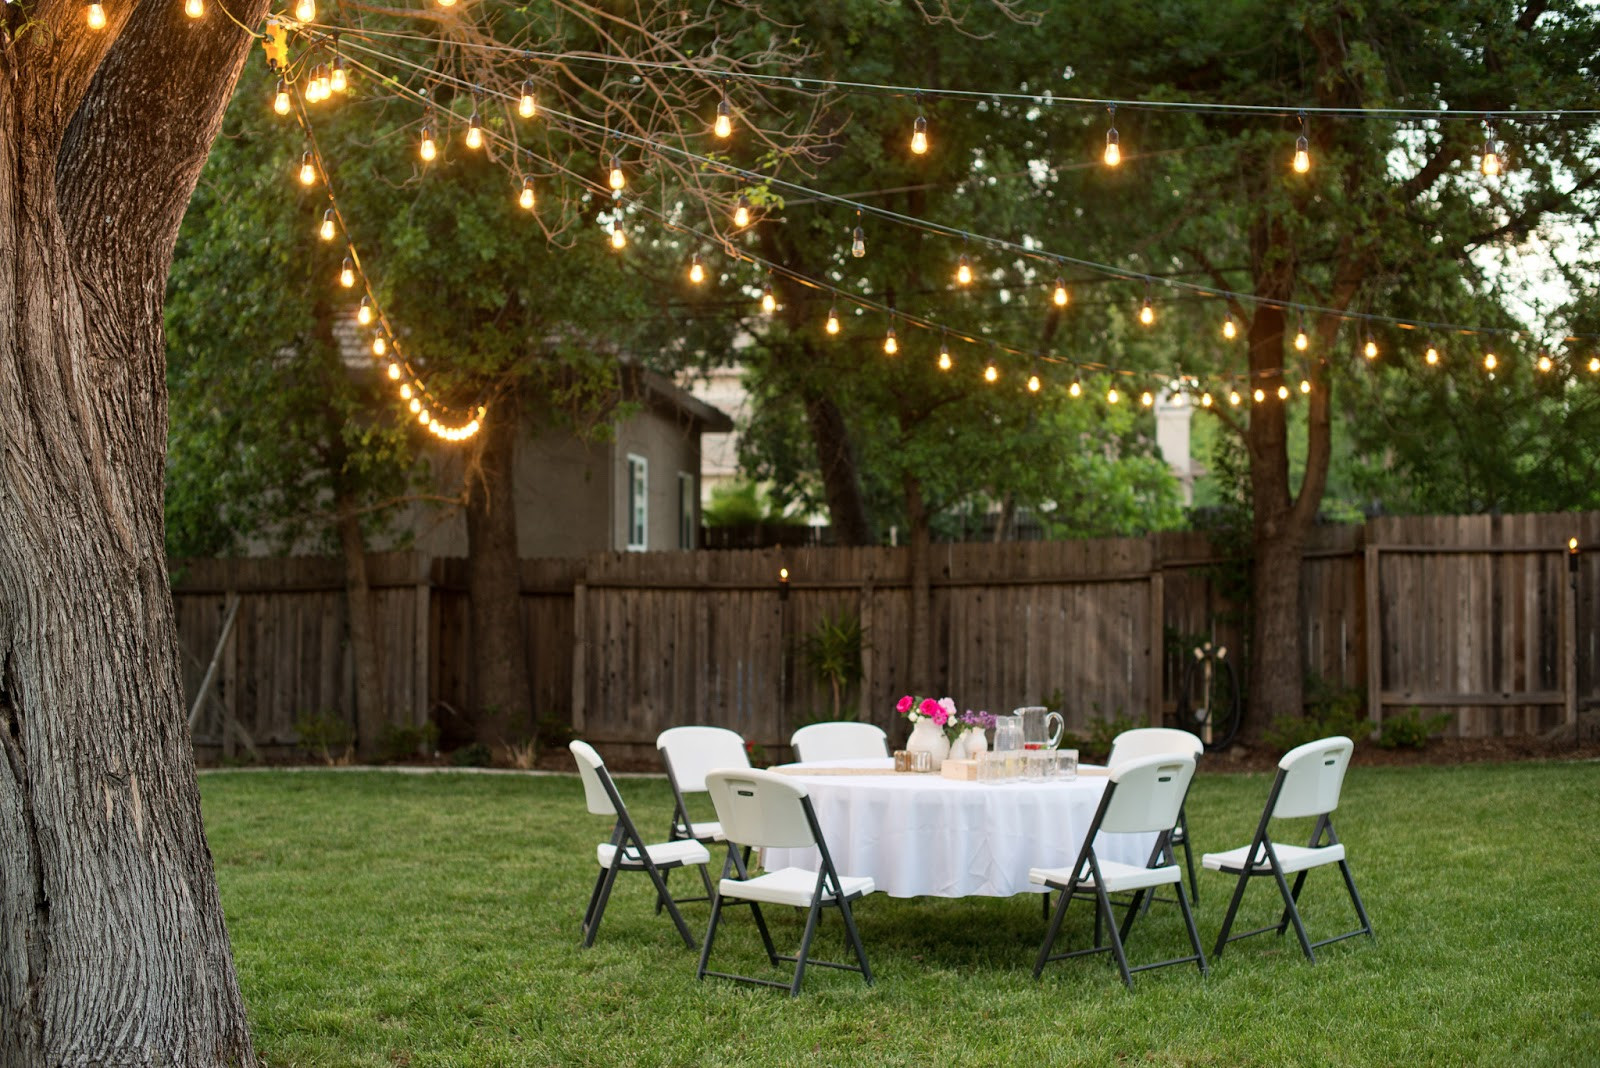 Ideas For Backyard Party  Backyard Party Ideas For Adults Image — Design & Ideas